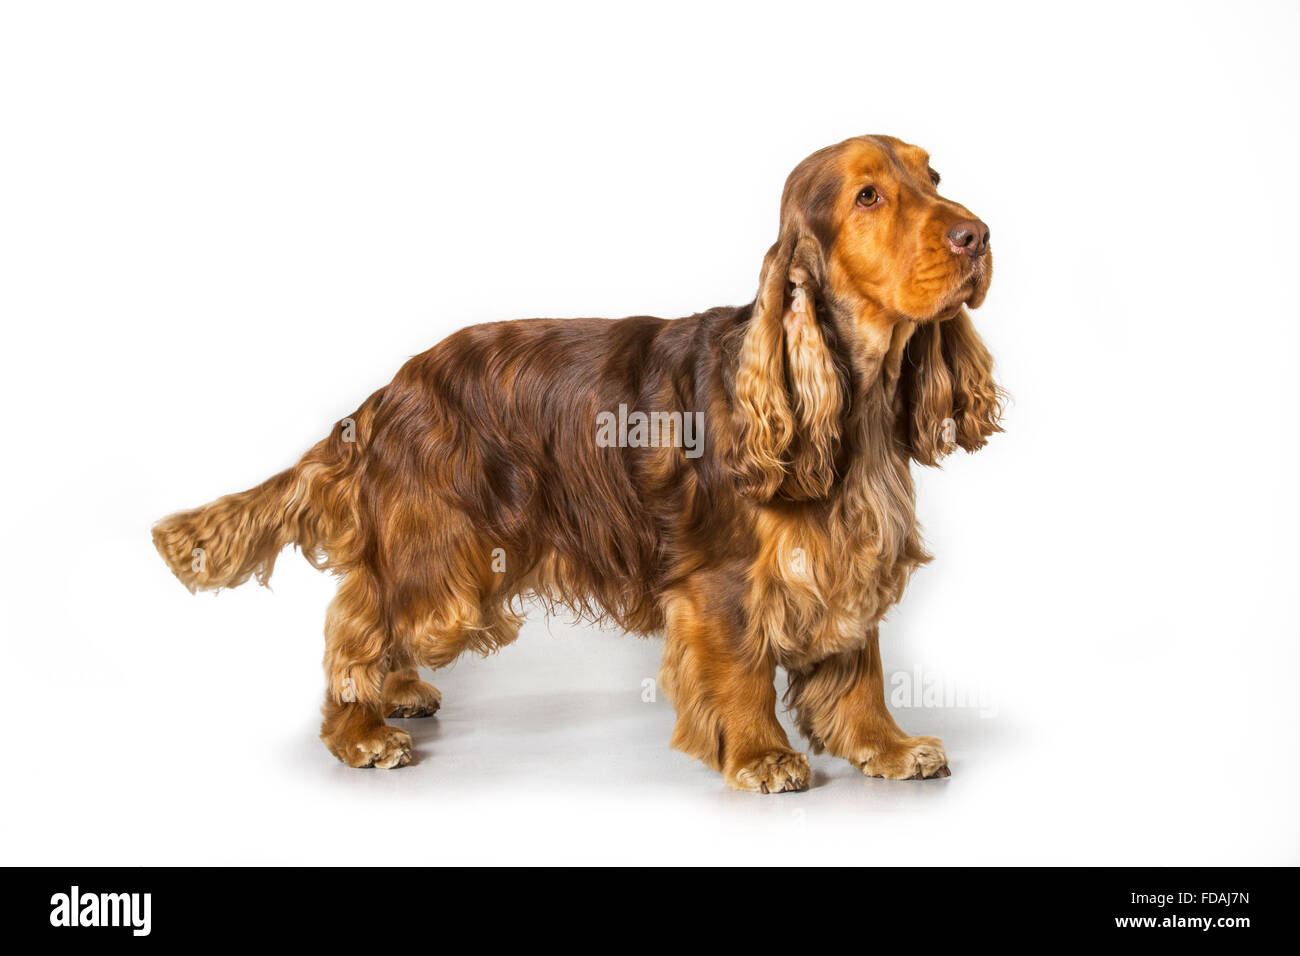 English Cocker Spaniel dog (Canis lupus familiaris) portrait against white background - Stock Image